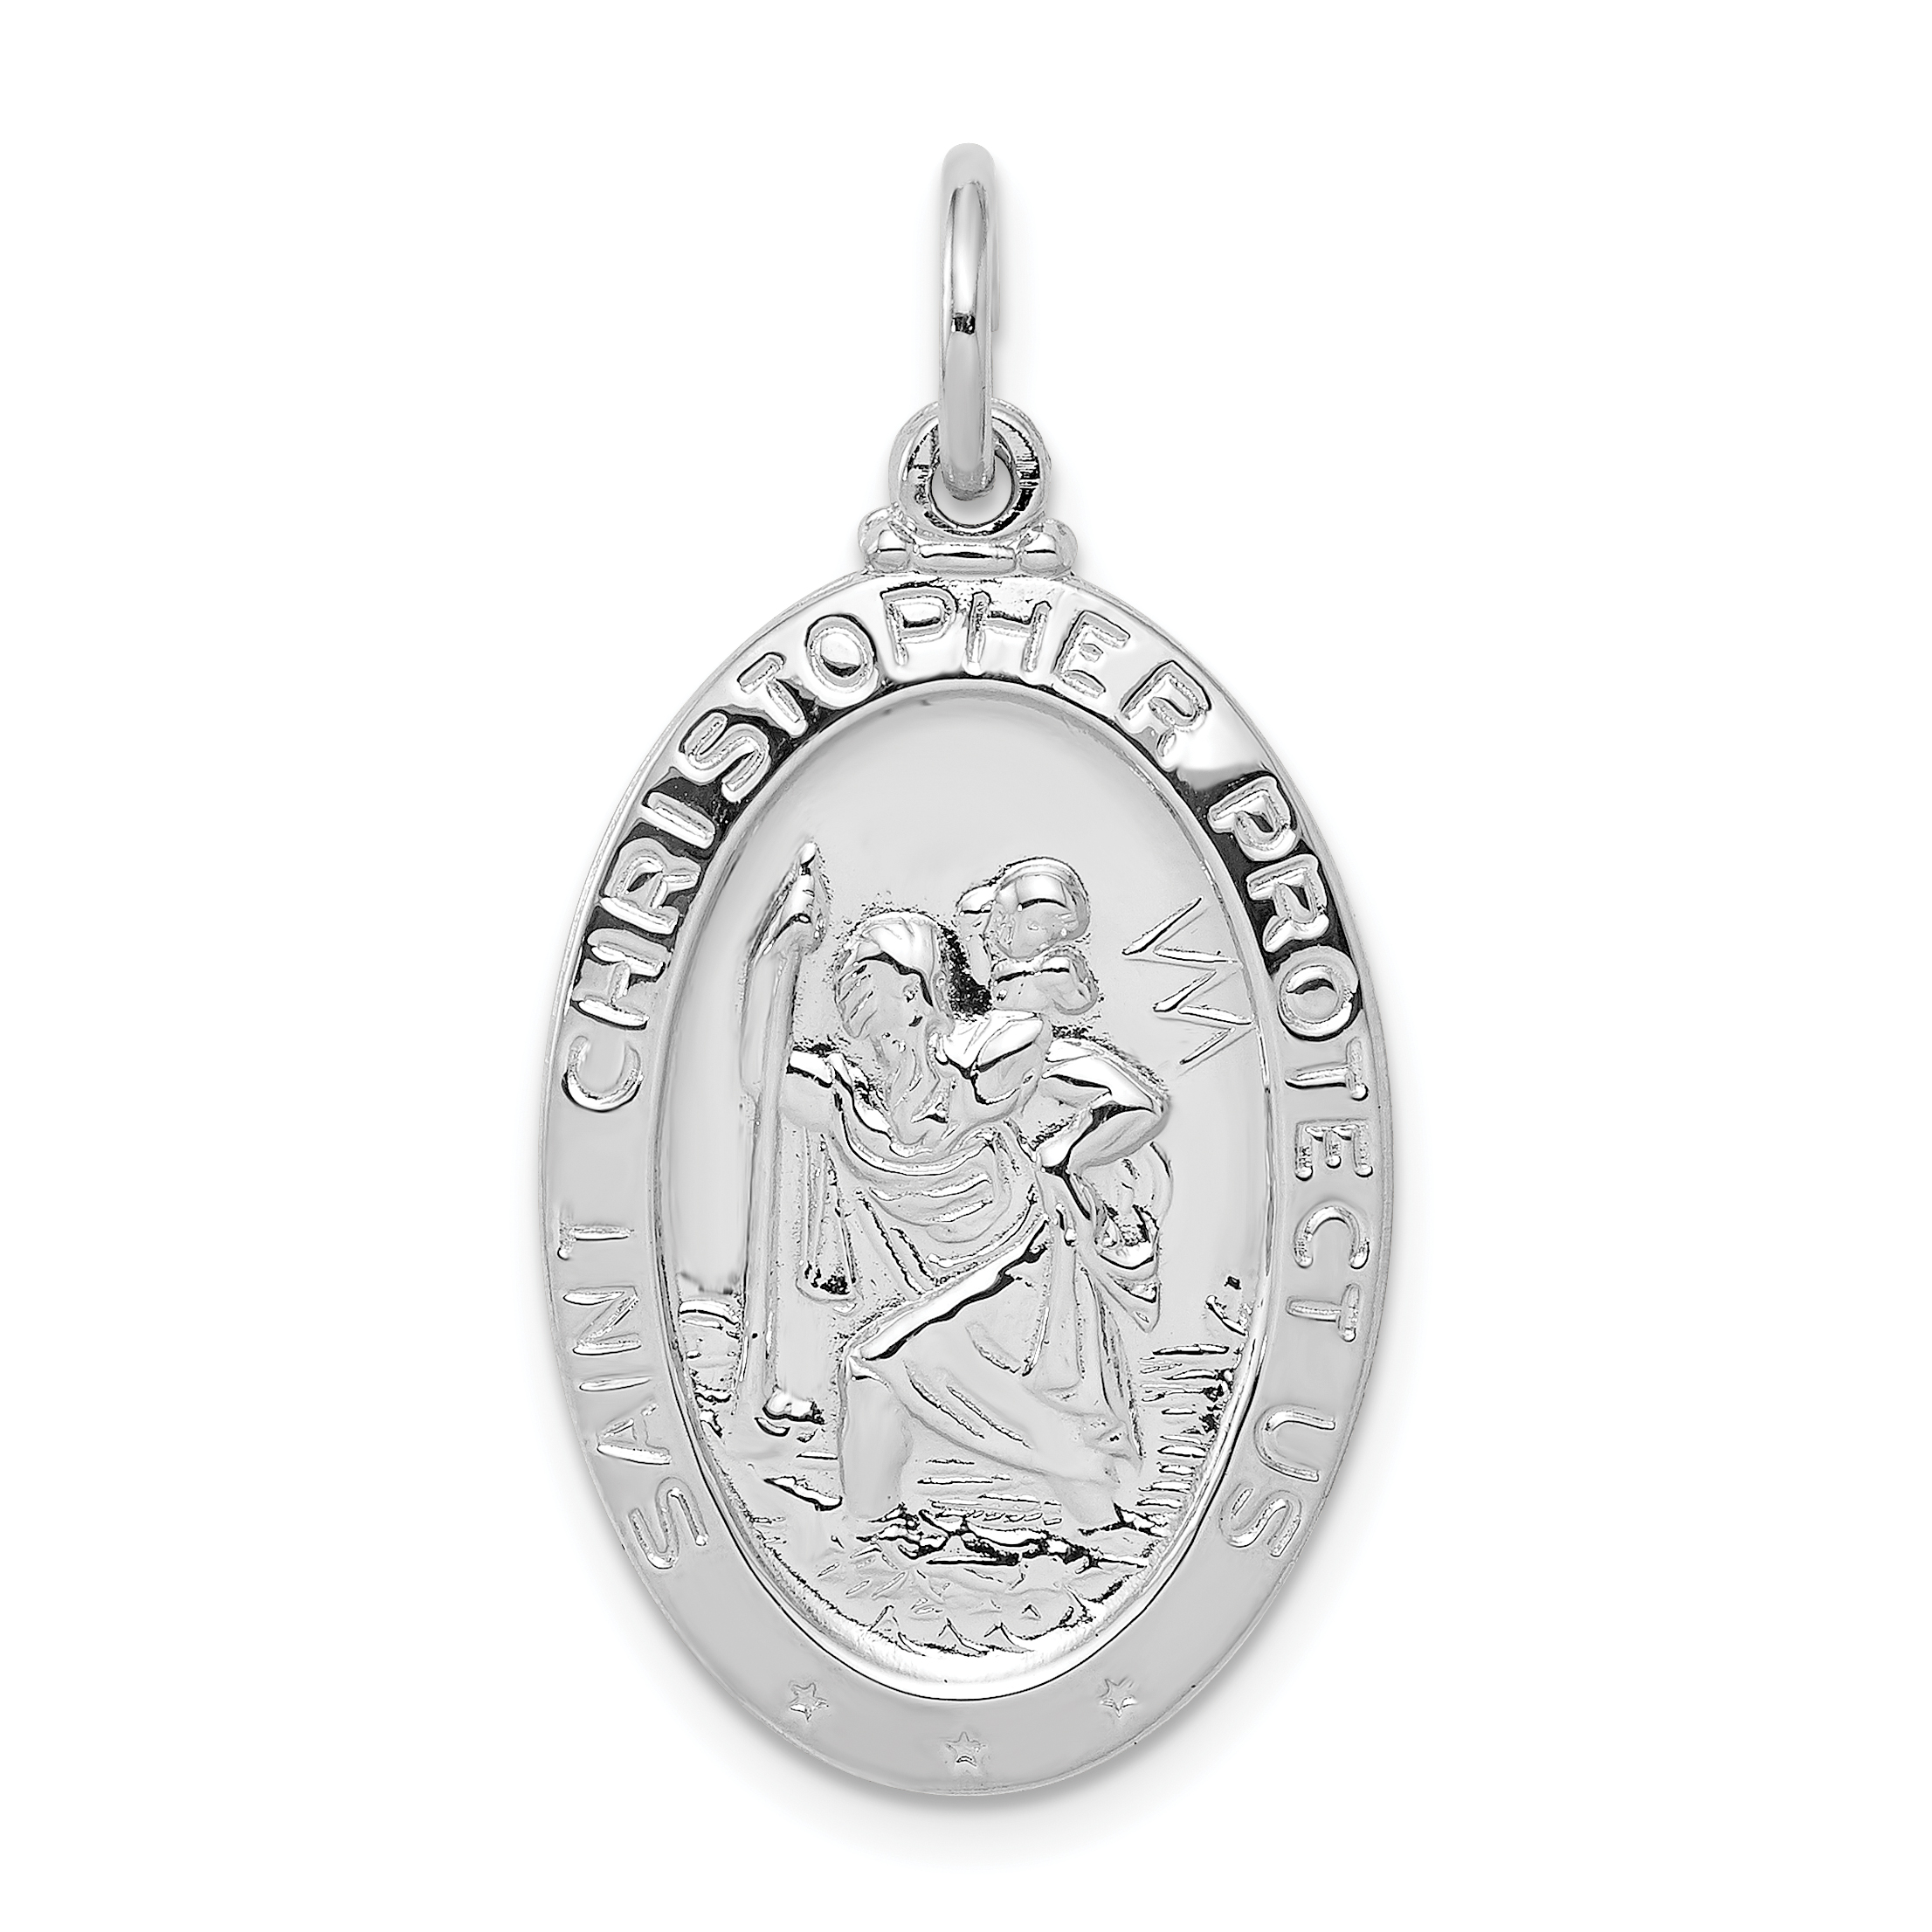 small pendant categories silver itm solid medal medallion saint christopher store us protect sterling